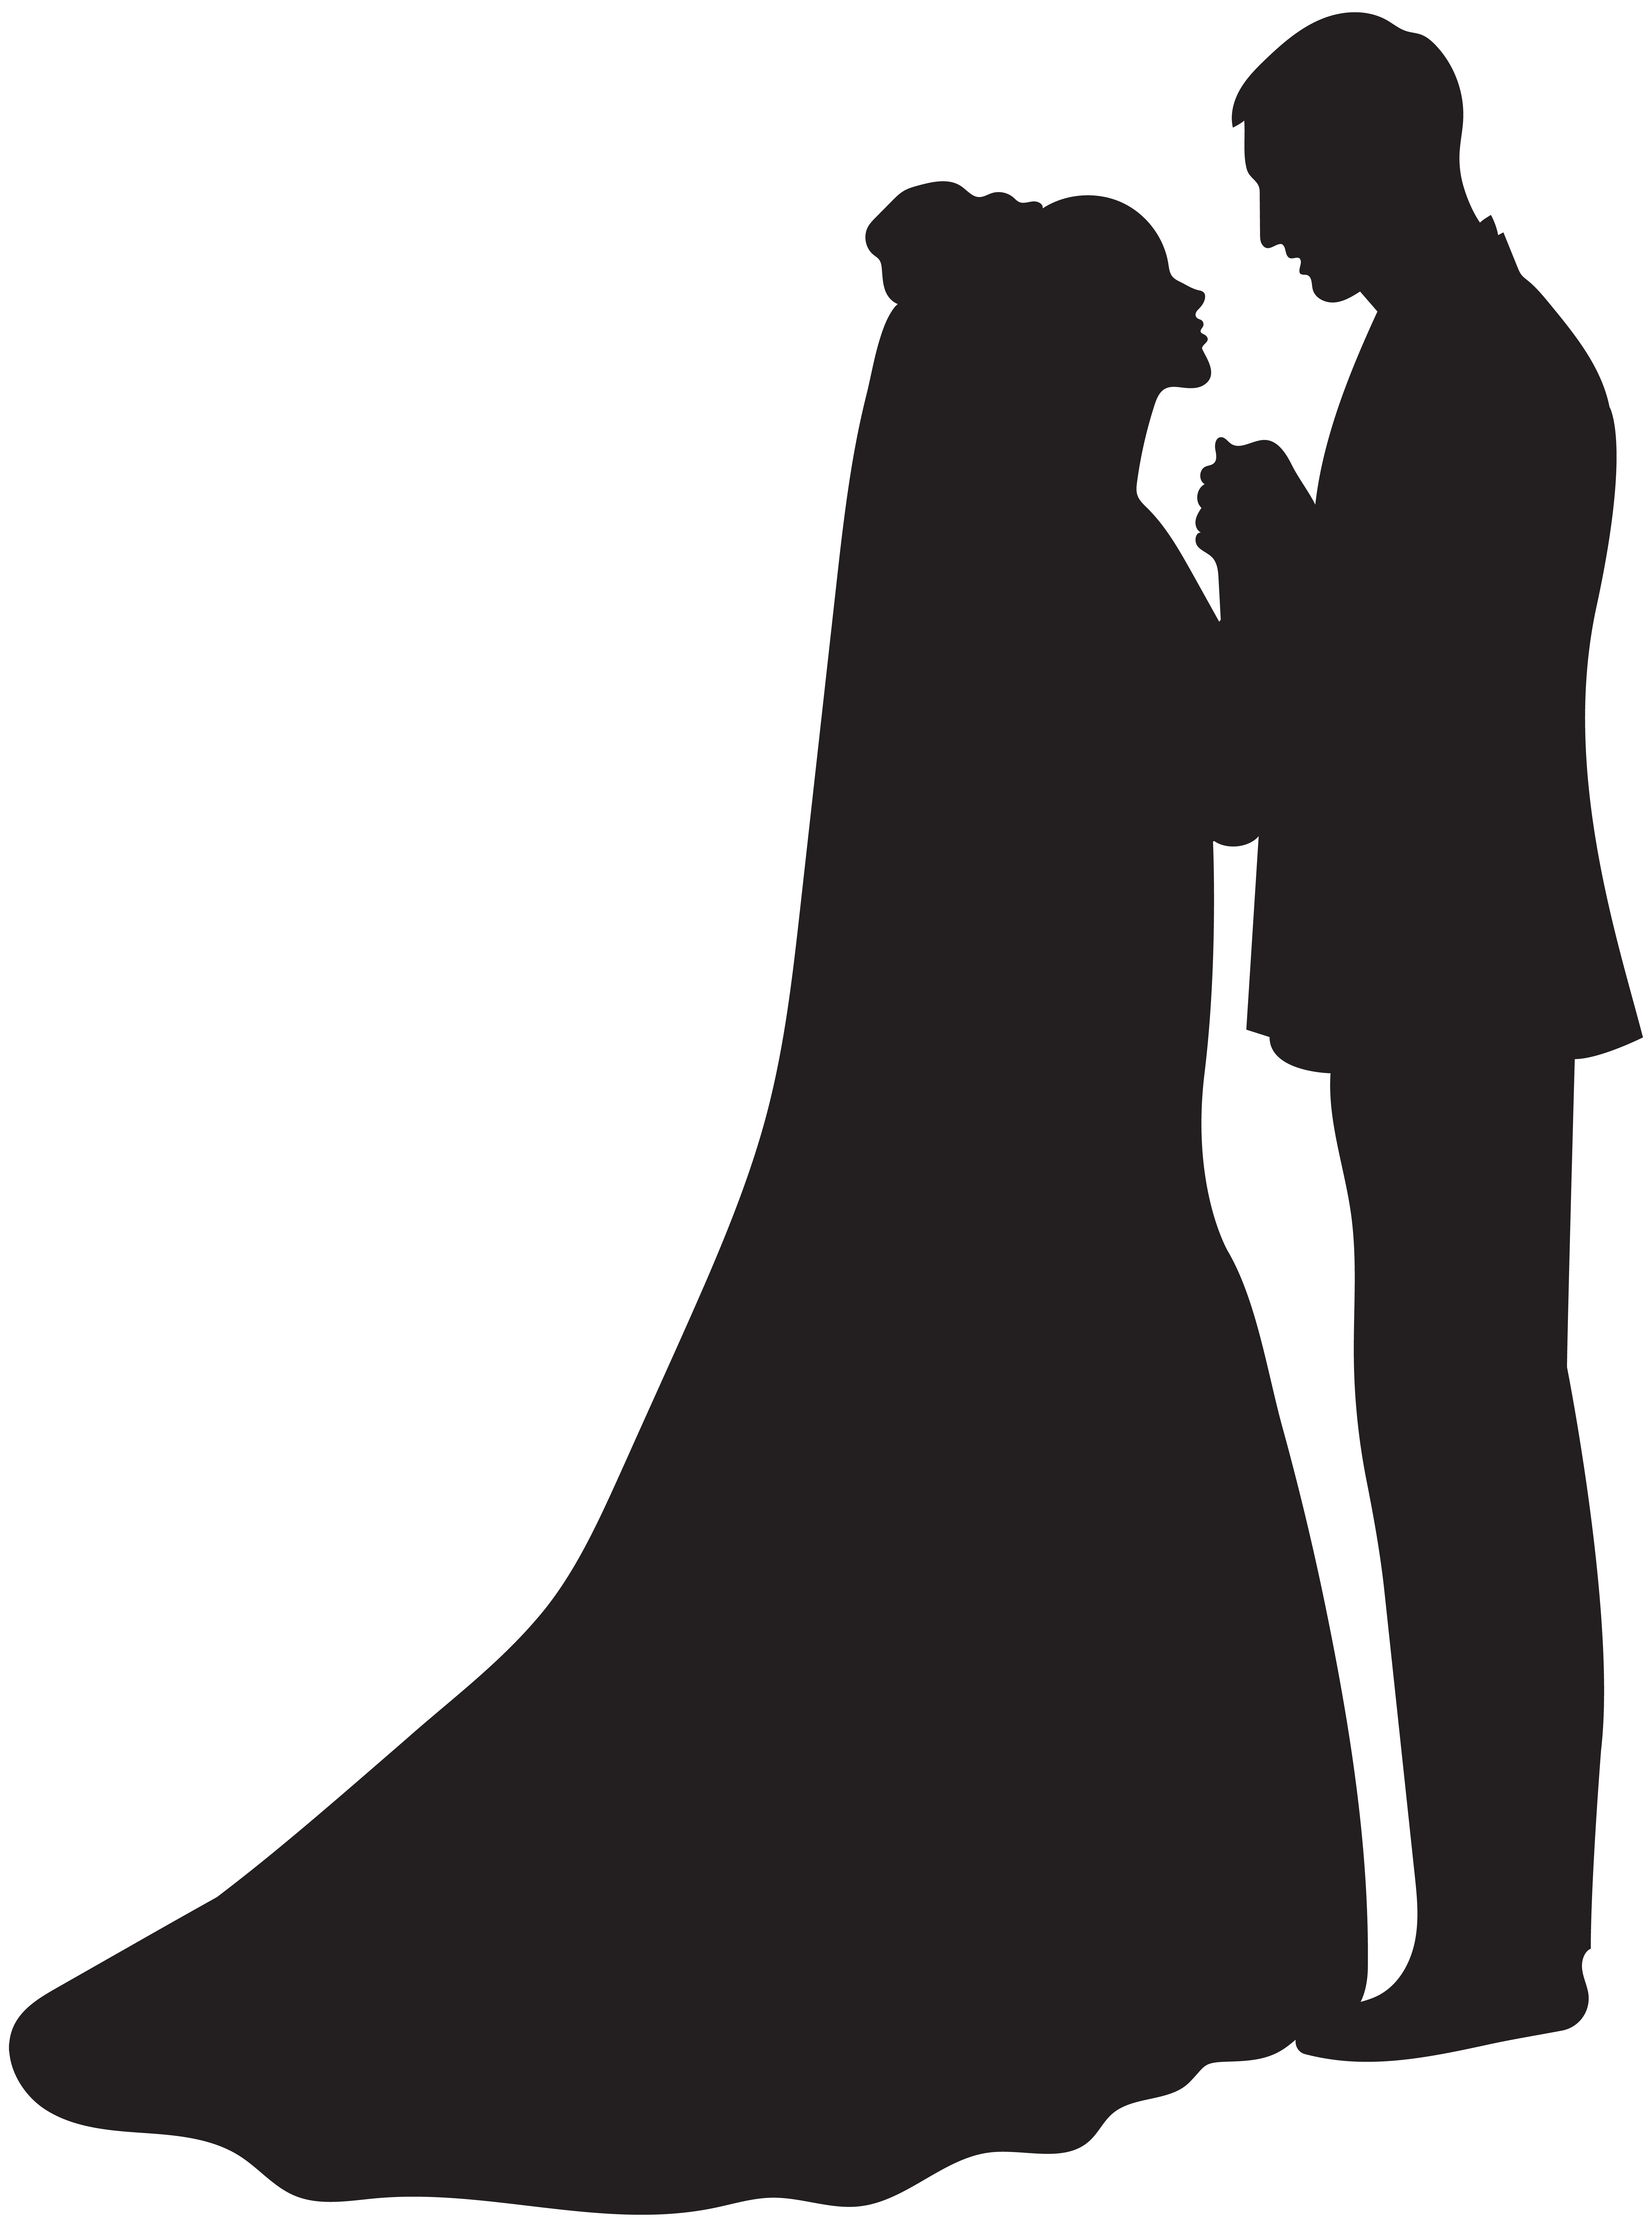 Marriage clipart married man. Bride silhouette at getdrawings